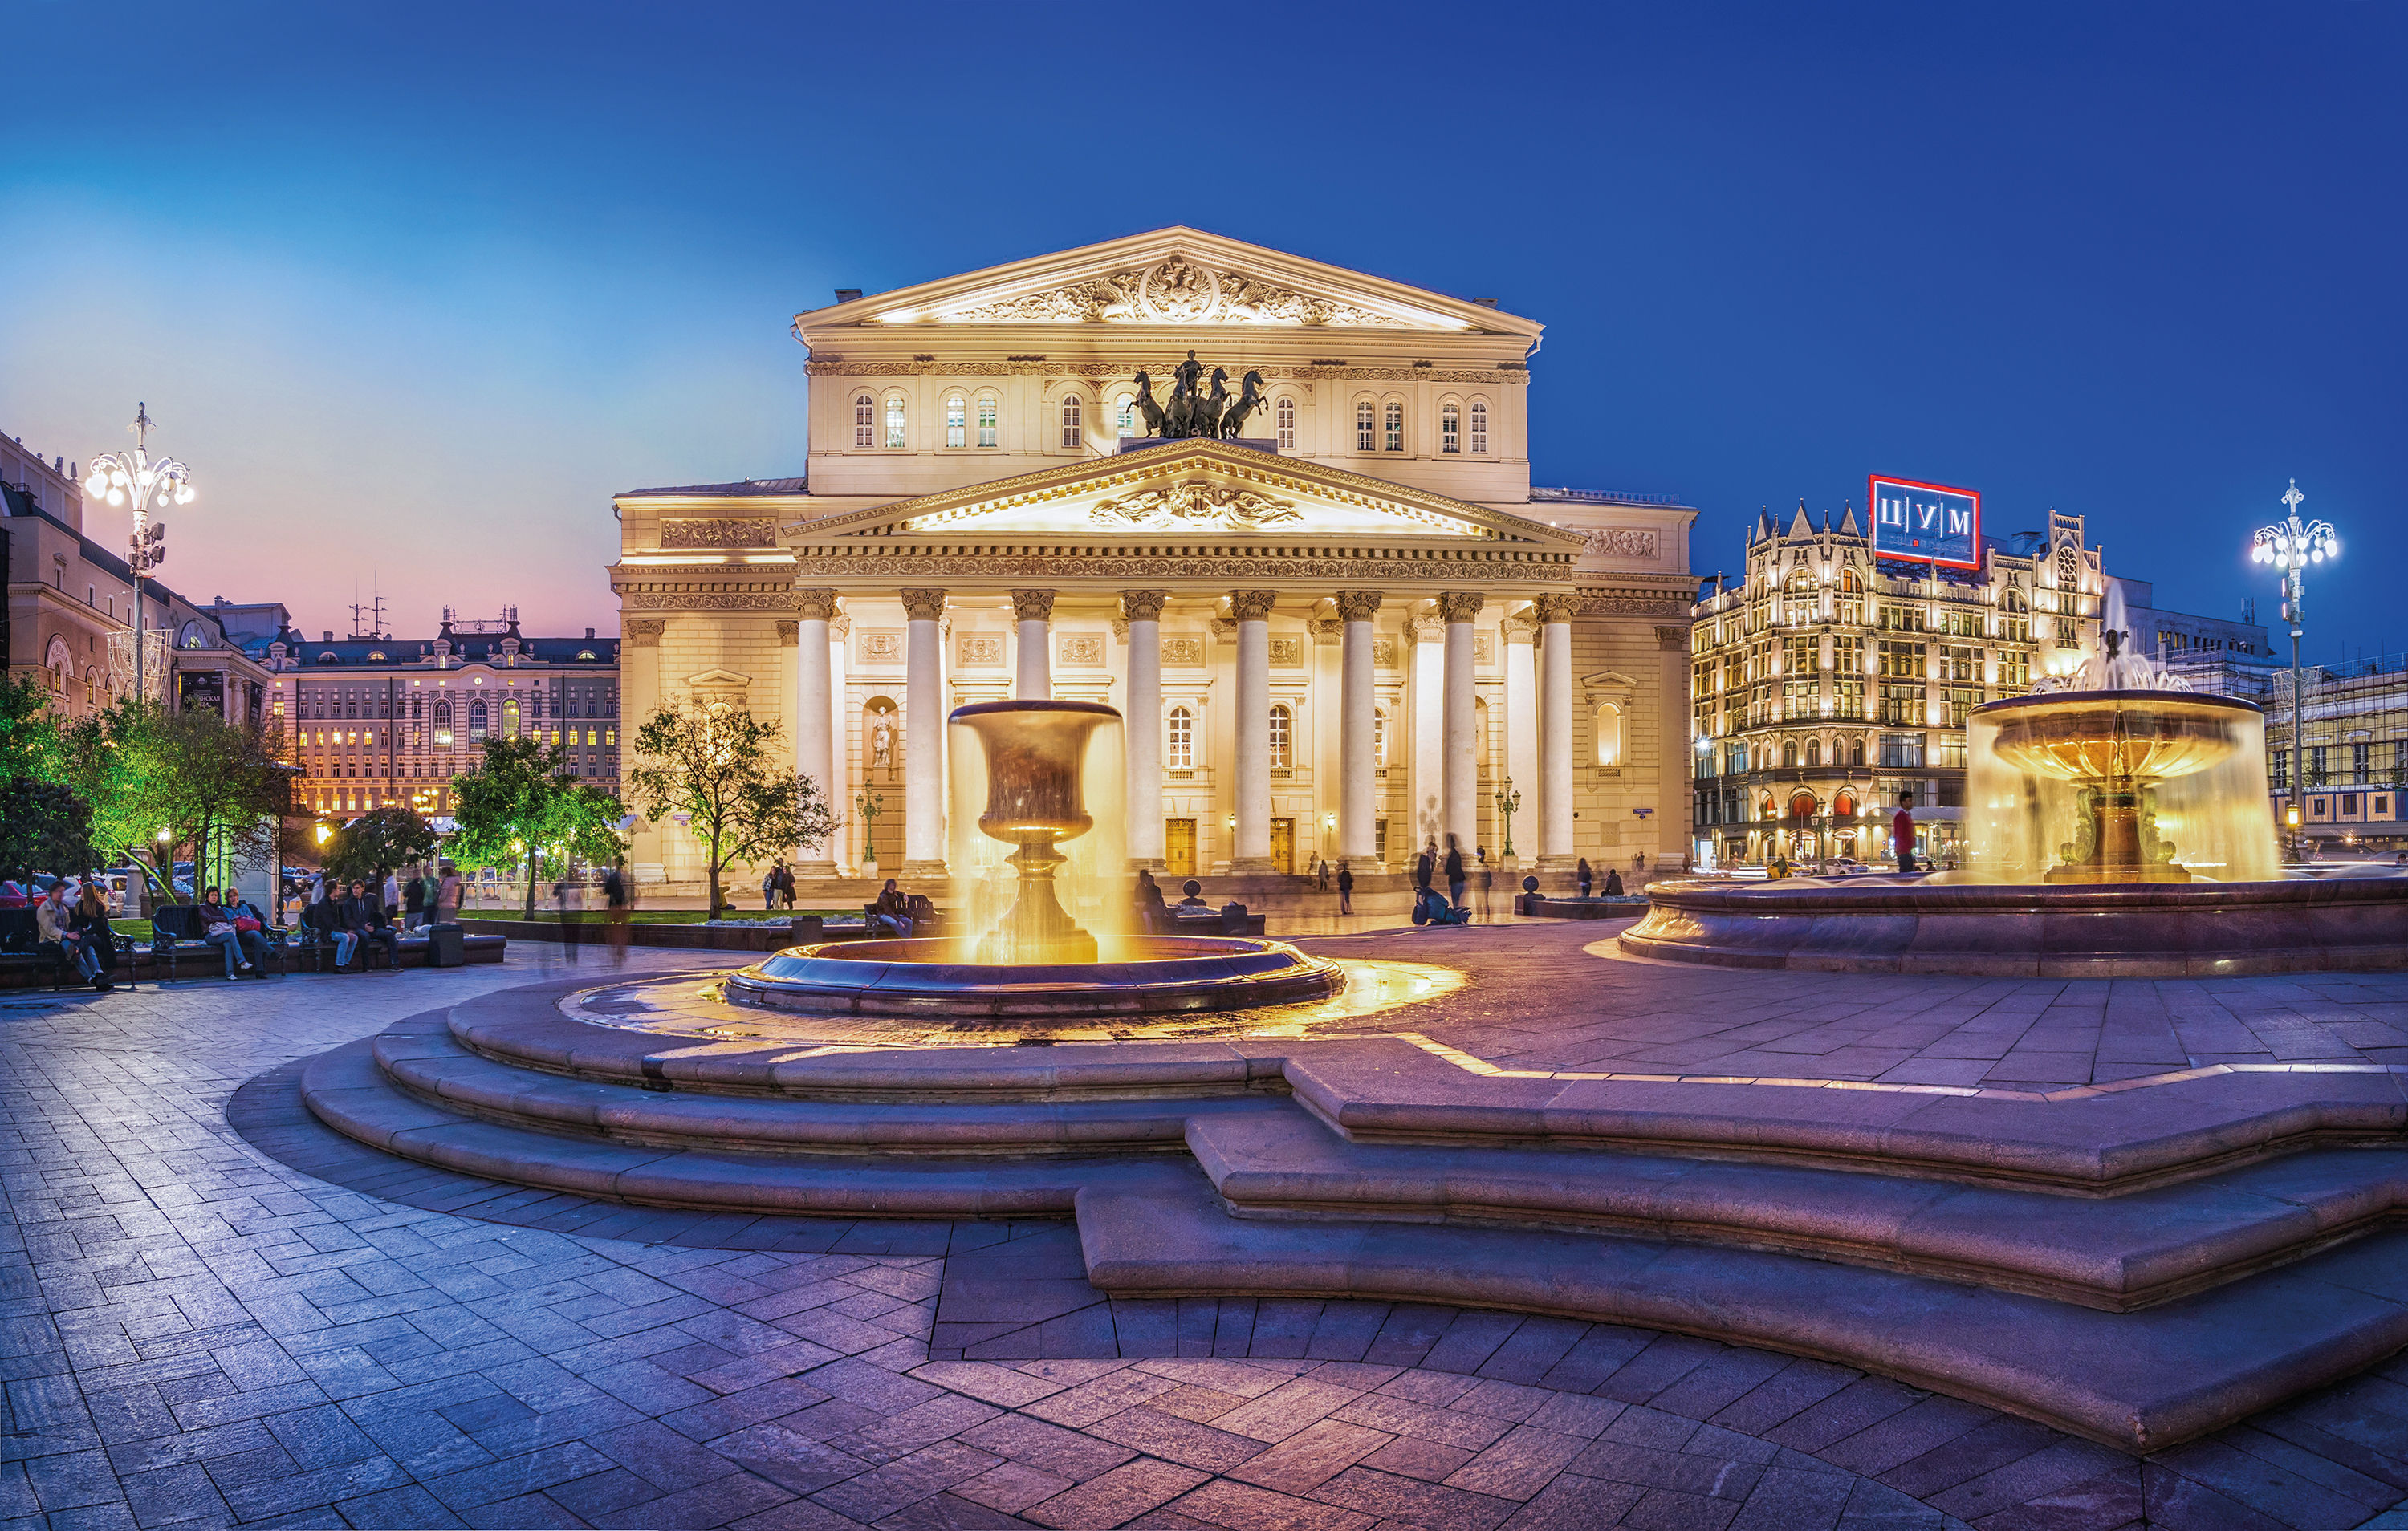 The Bolshoi theatre in the evening light